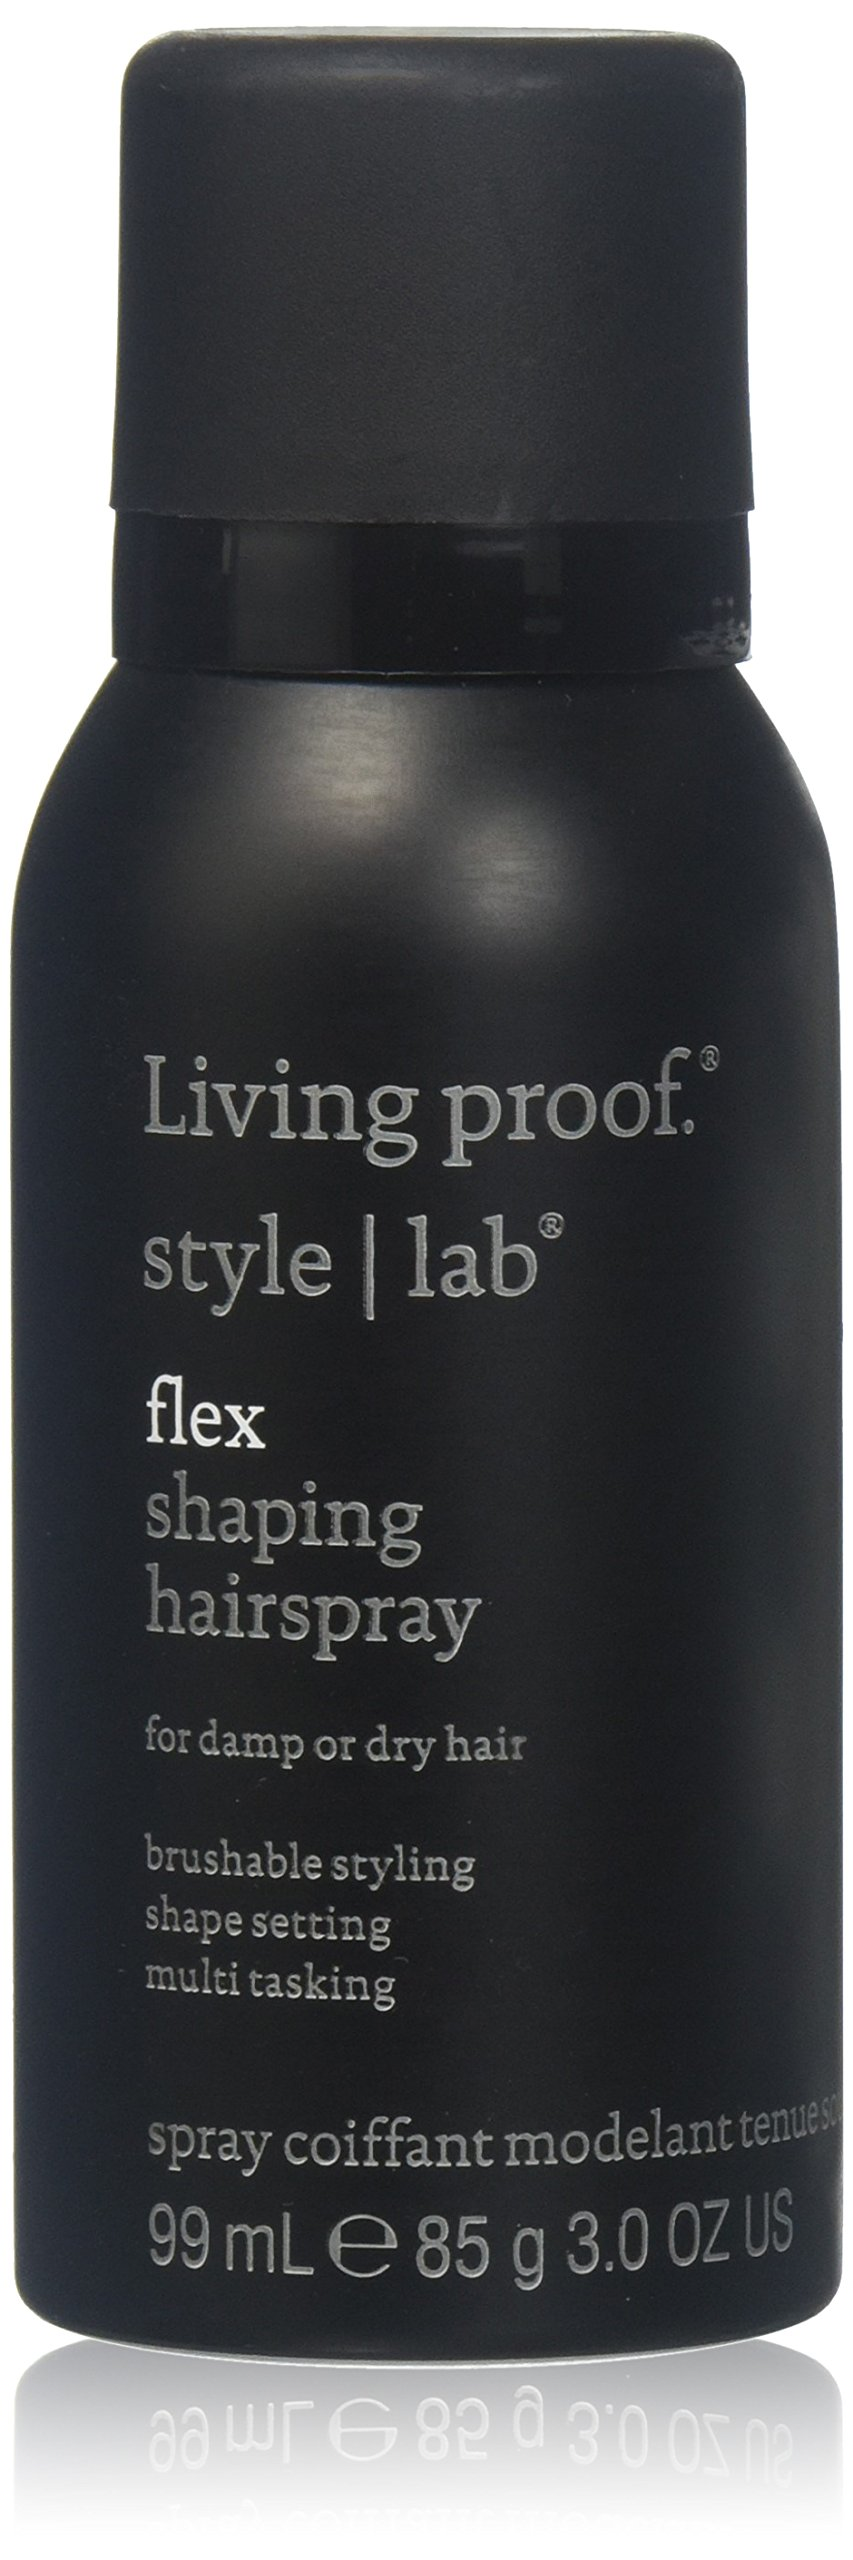 Living Proof Flex Shaping Hairspray, Travel by Living Proof (Image #1)